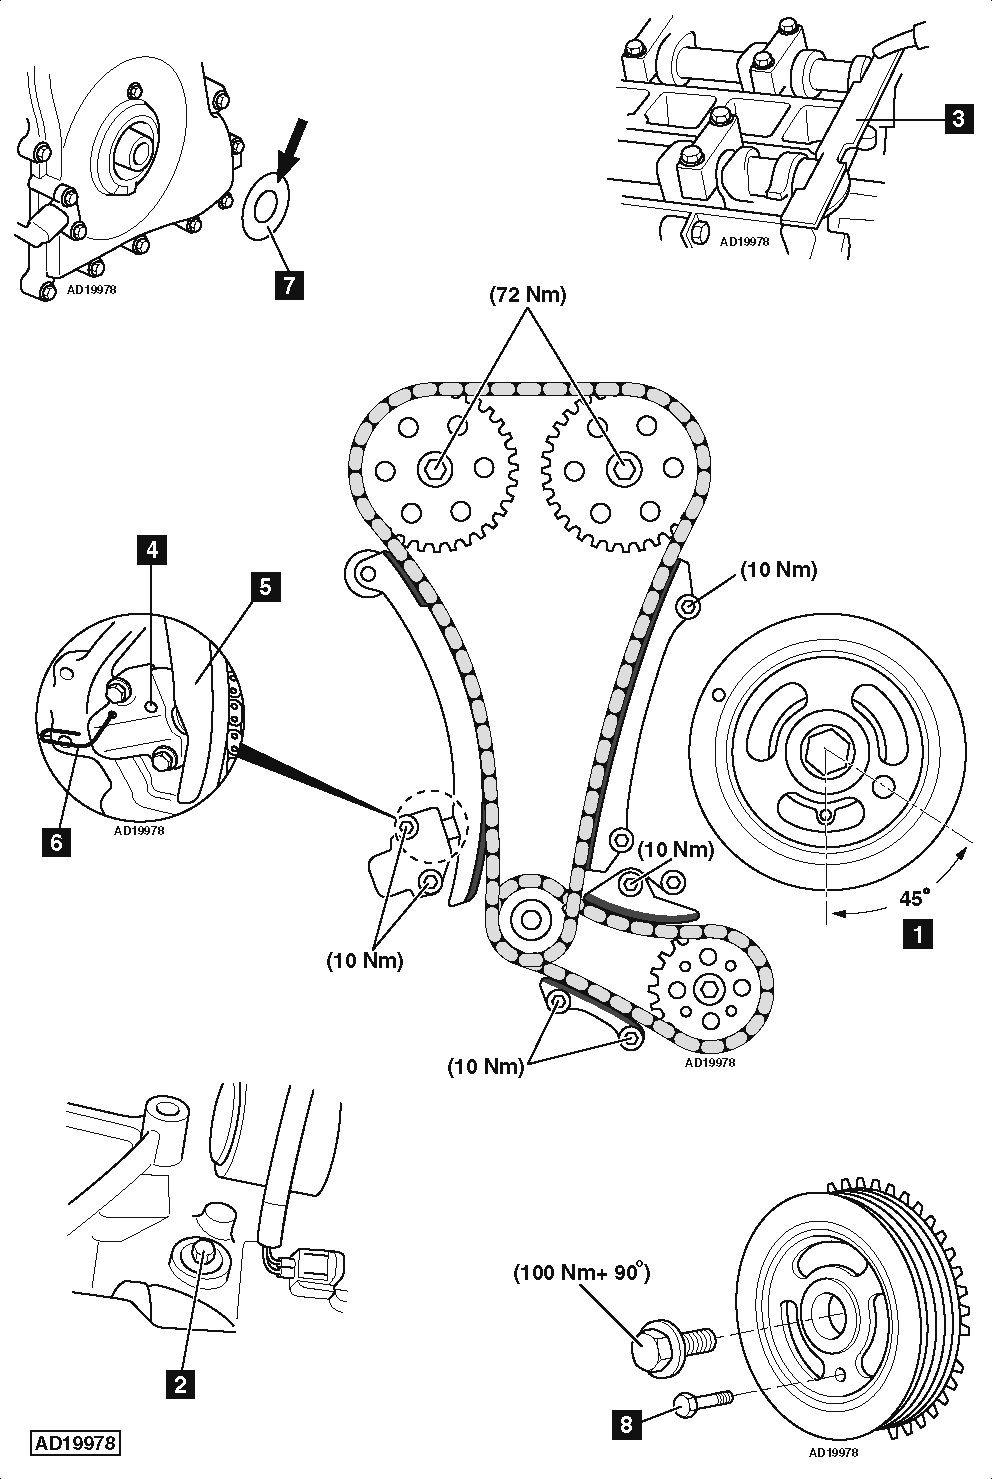 Service manual [1991 Audi 80 Timing Chain Marks